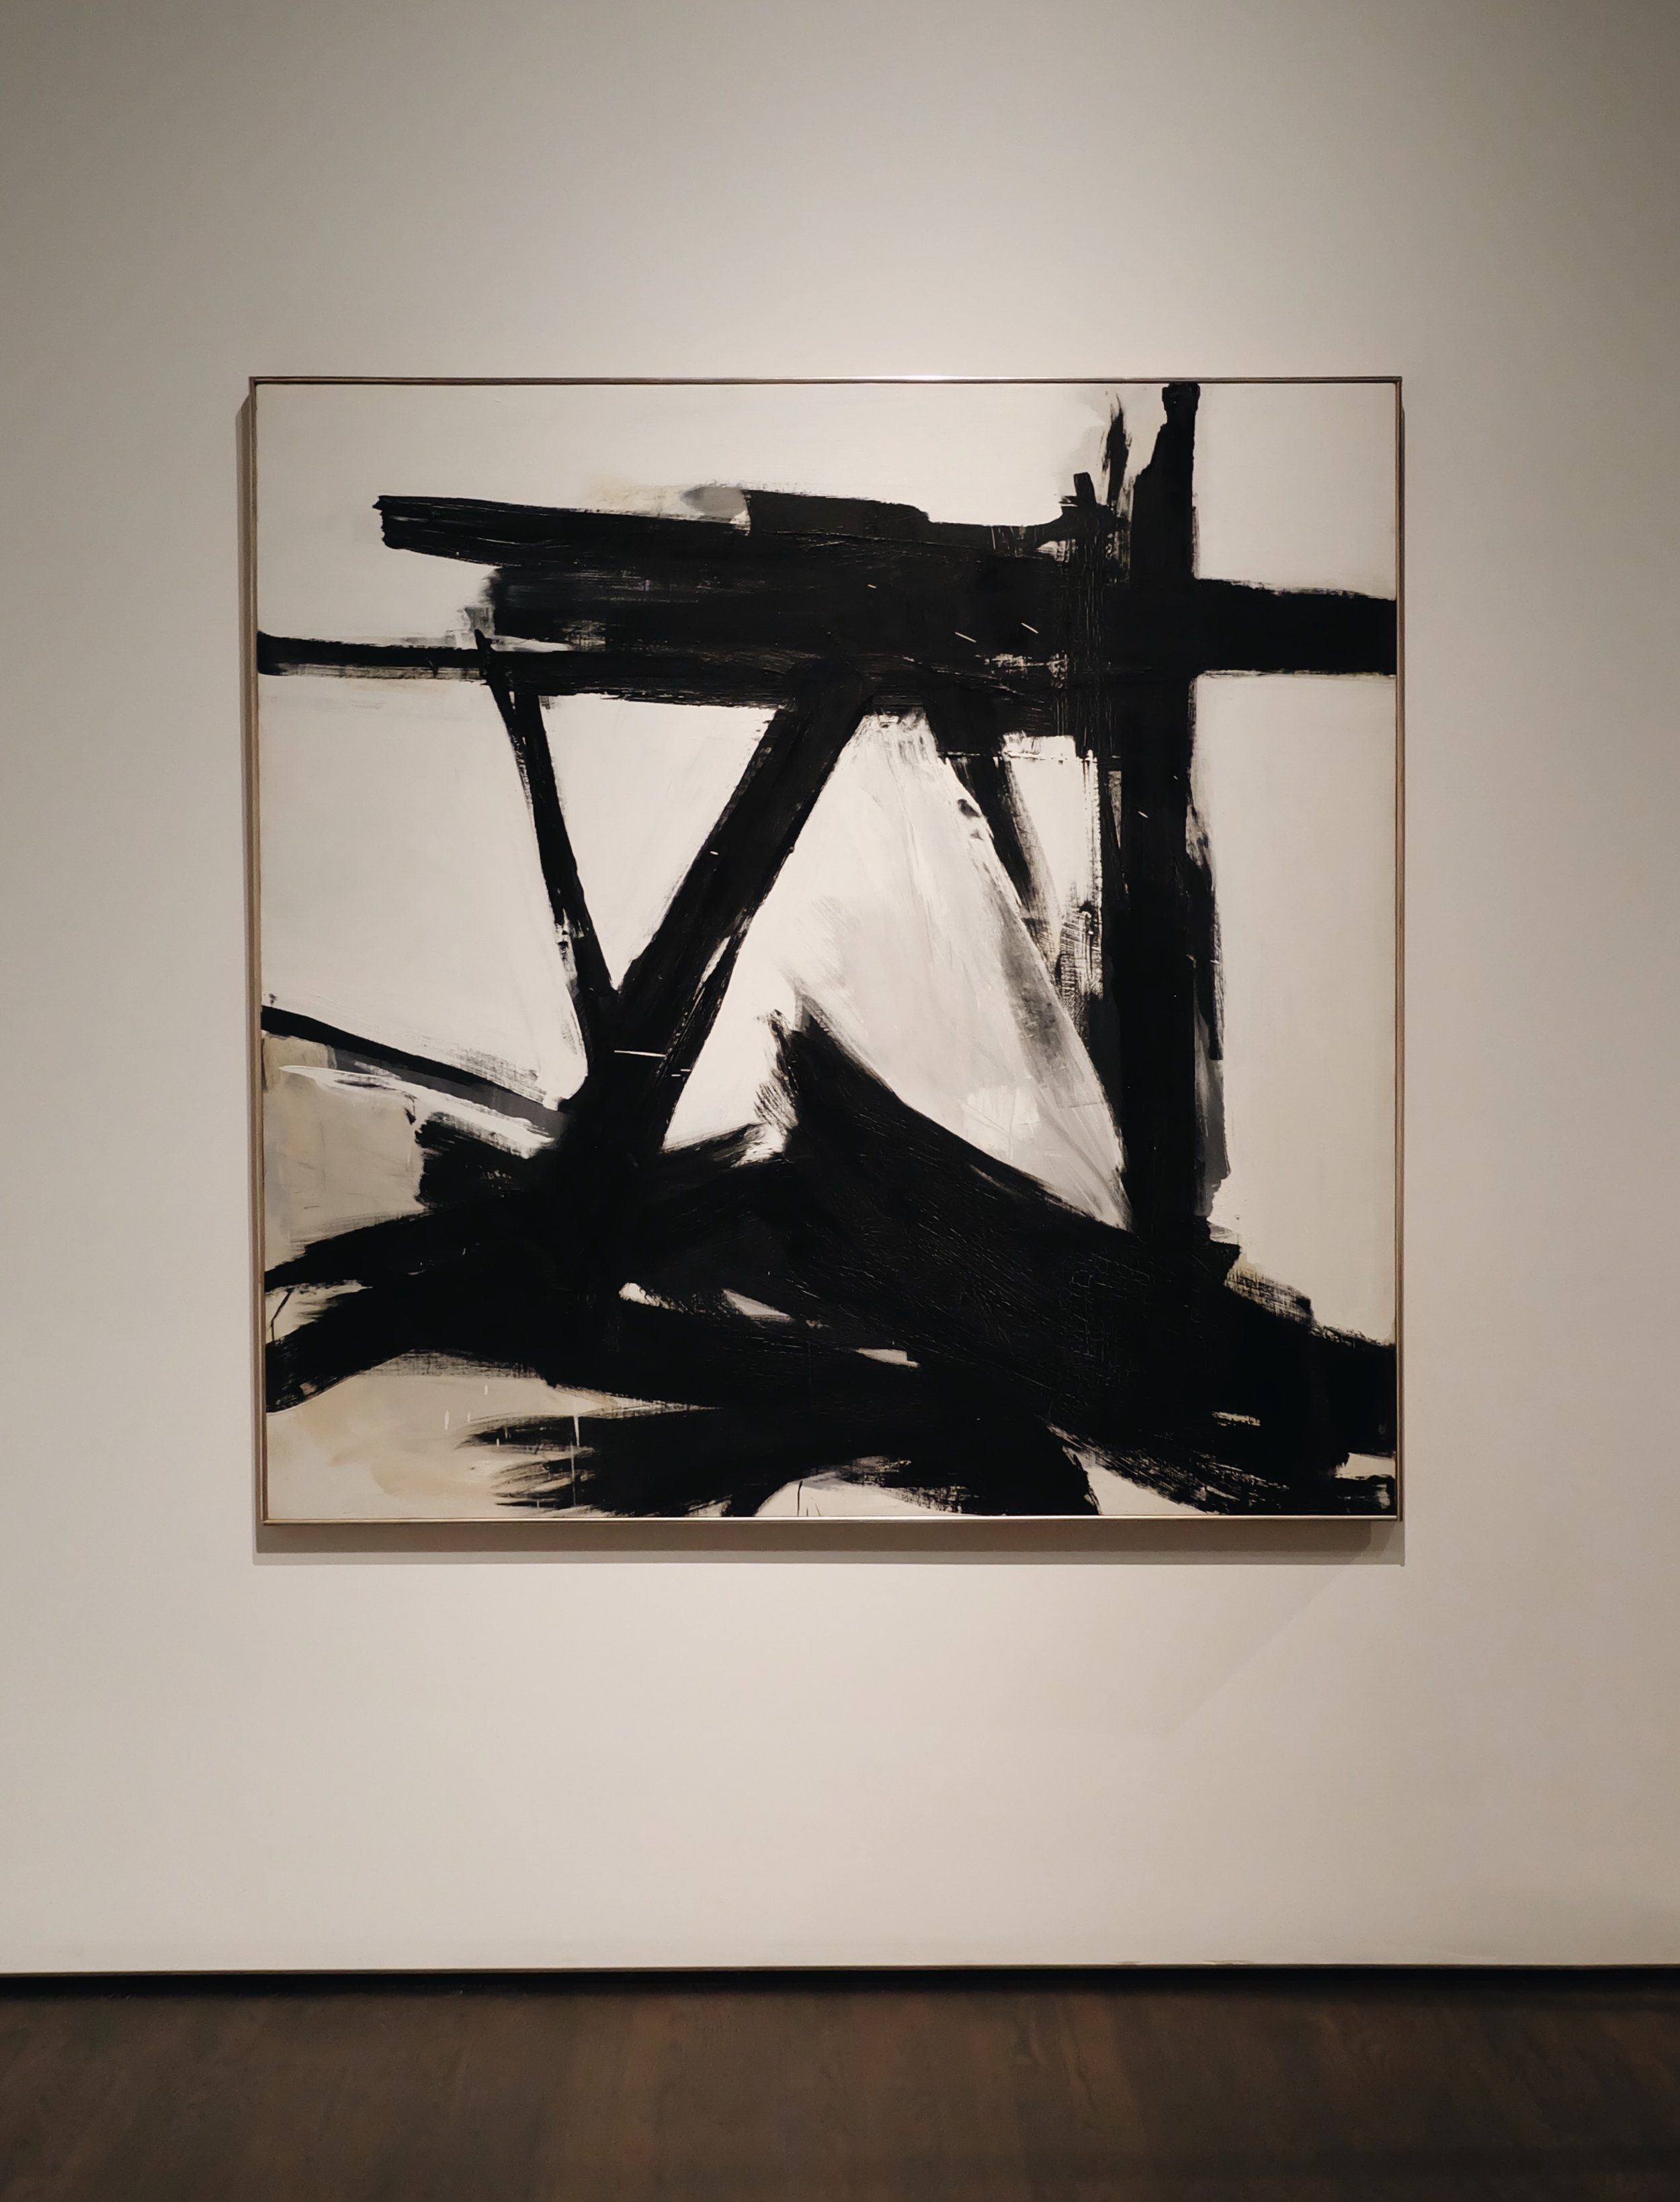 Franz Kline, The Ballatine, 1958-60 at LACMA